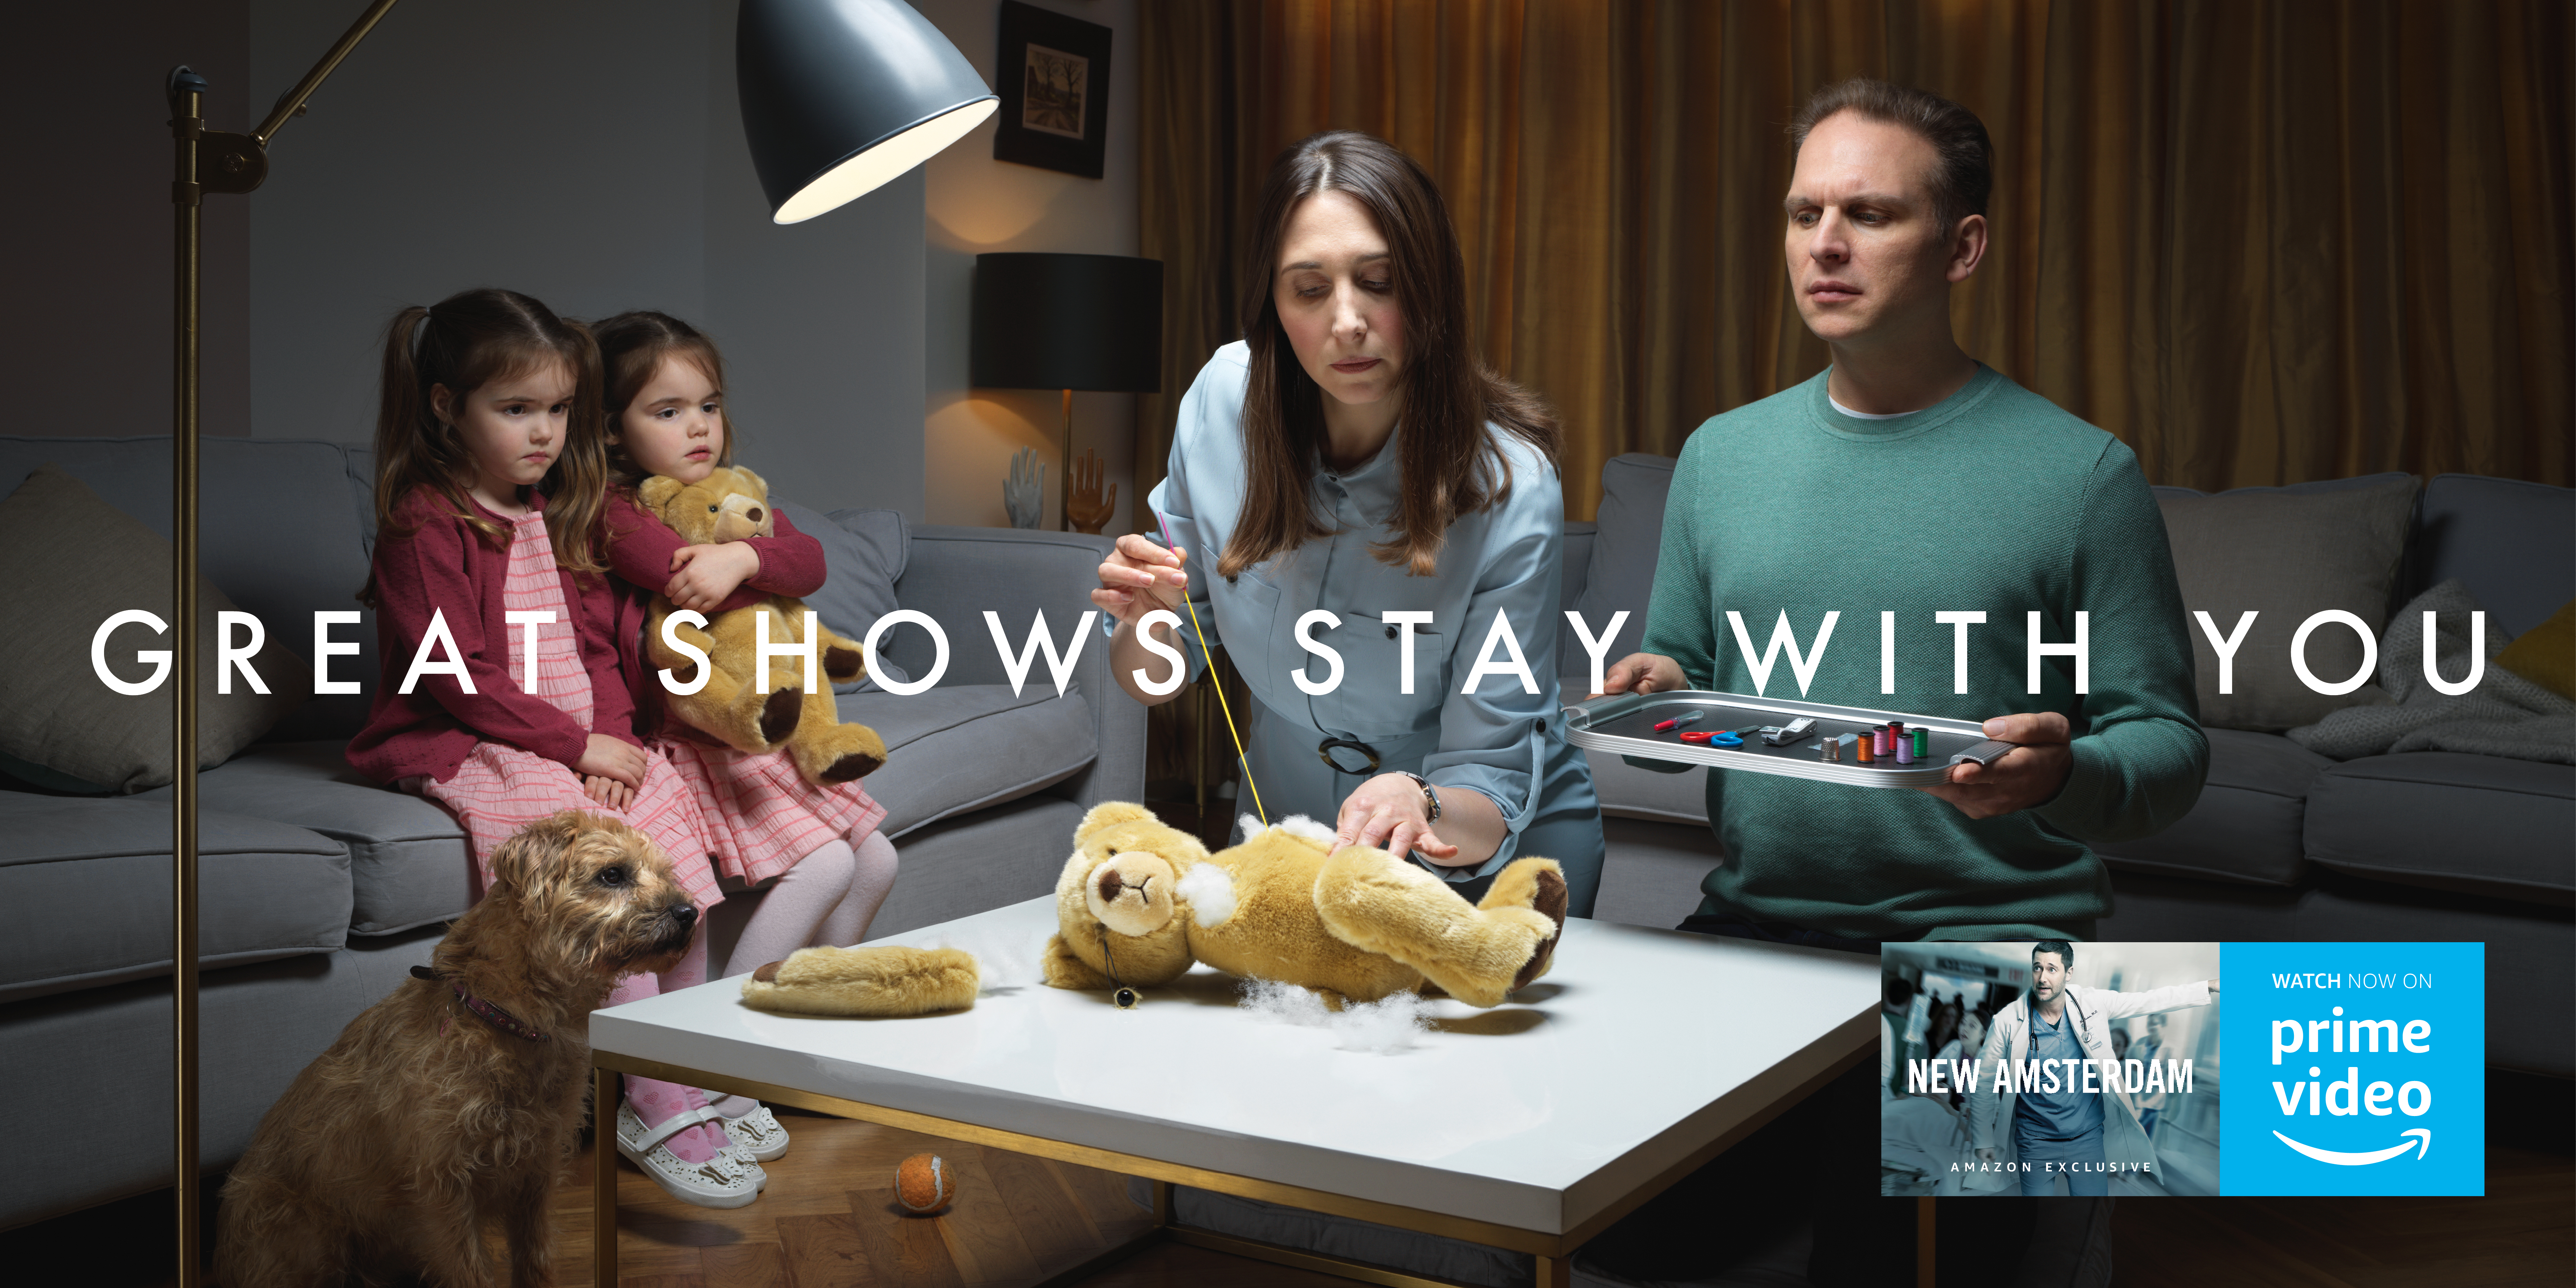 Great Shows Continue to Stay with Us in Amazon's Latest Ads